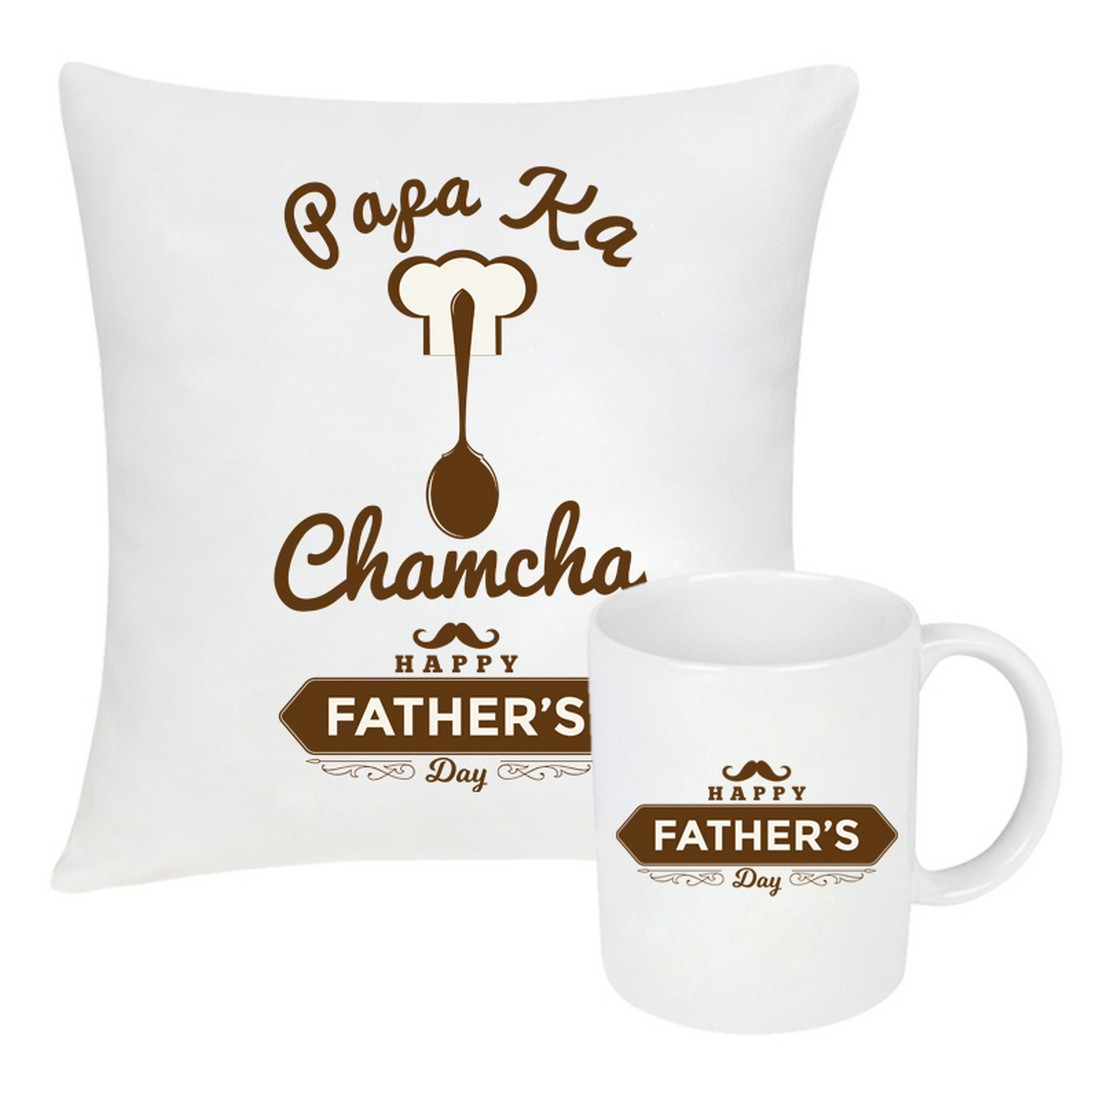 Sattva Combo Premium Printed Cushion Cover With Filler 16 X16 Inches & Ceramic Mug 350 ML EVSCOCM025 For Father's Day